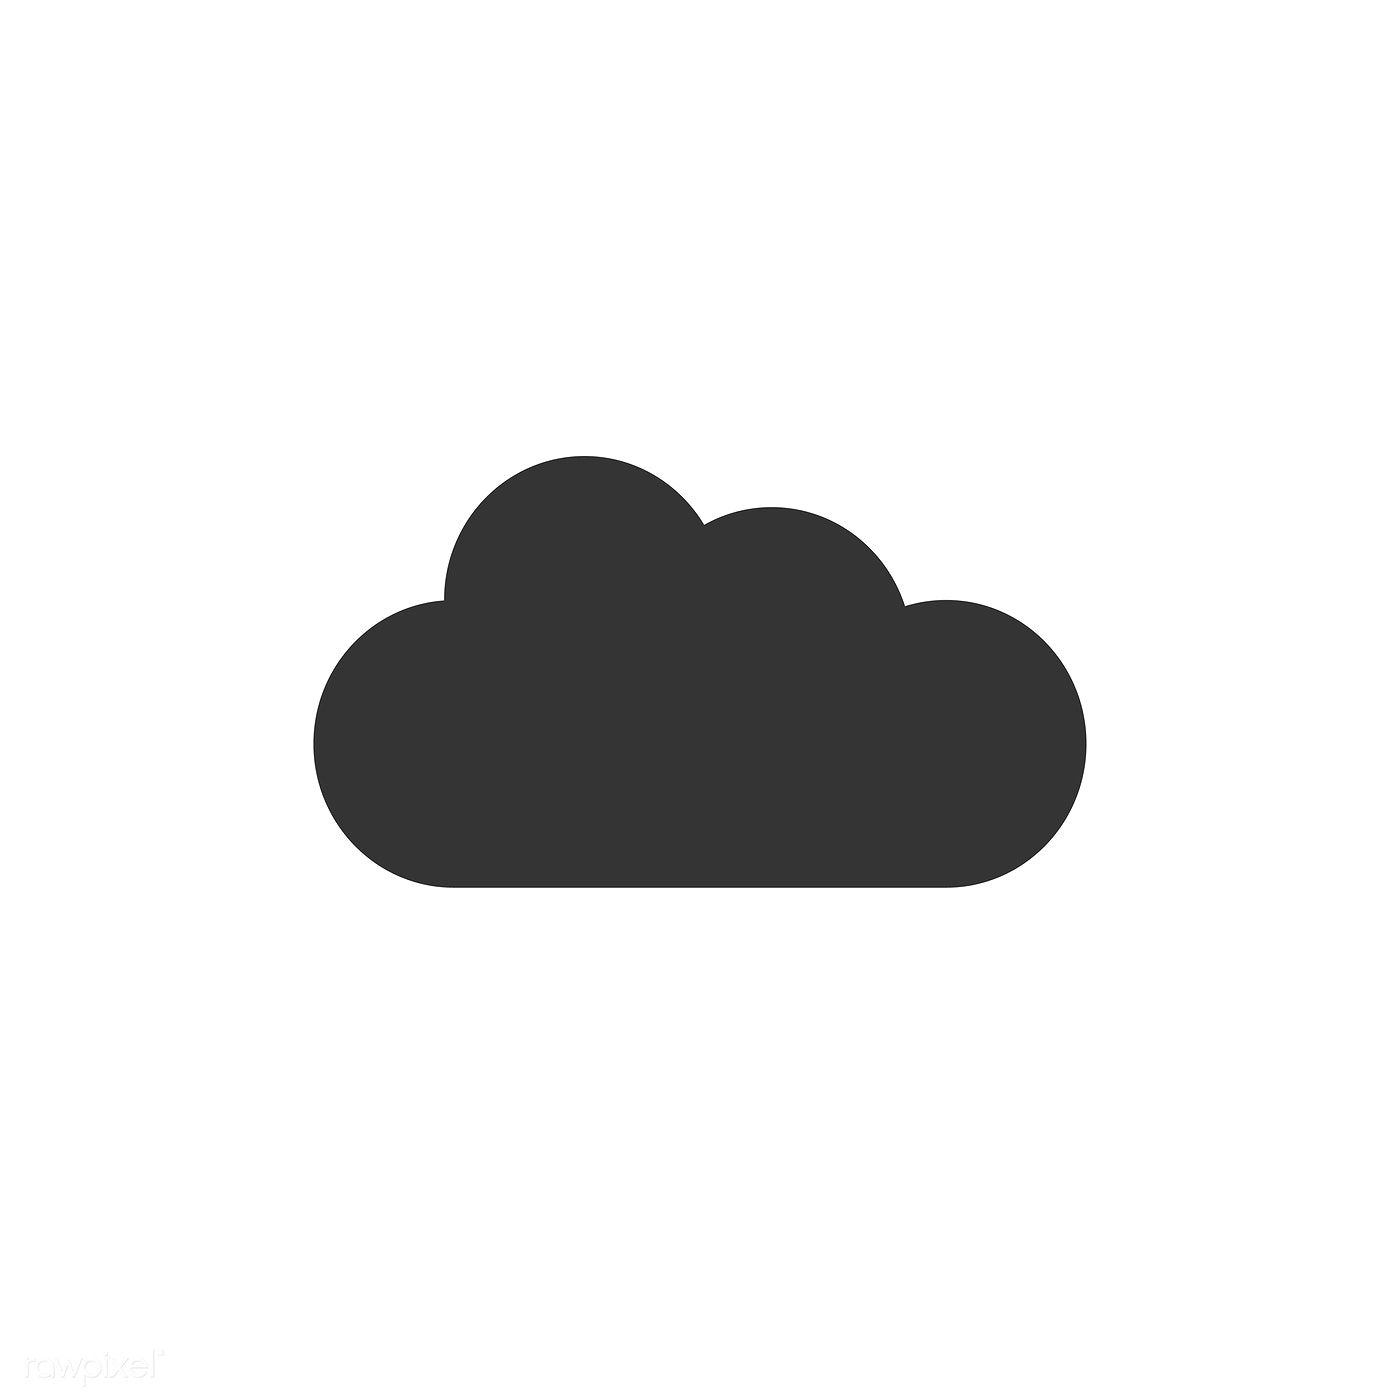 App icon vector clipart vector library library Cloud icon vector | free image by rawpixel.com | Free Vectors ... vector library library